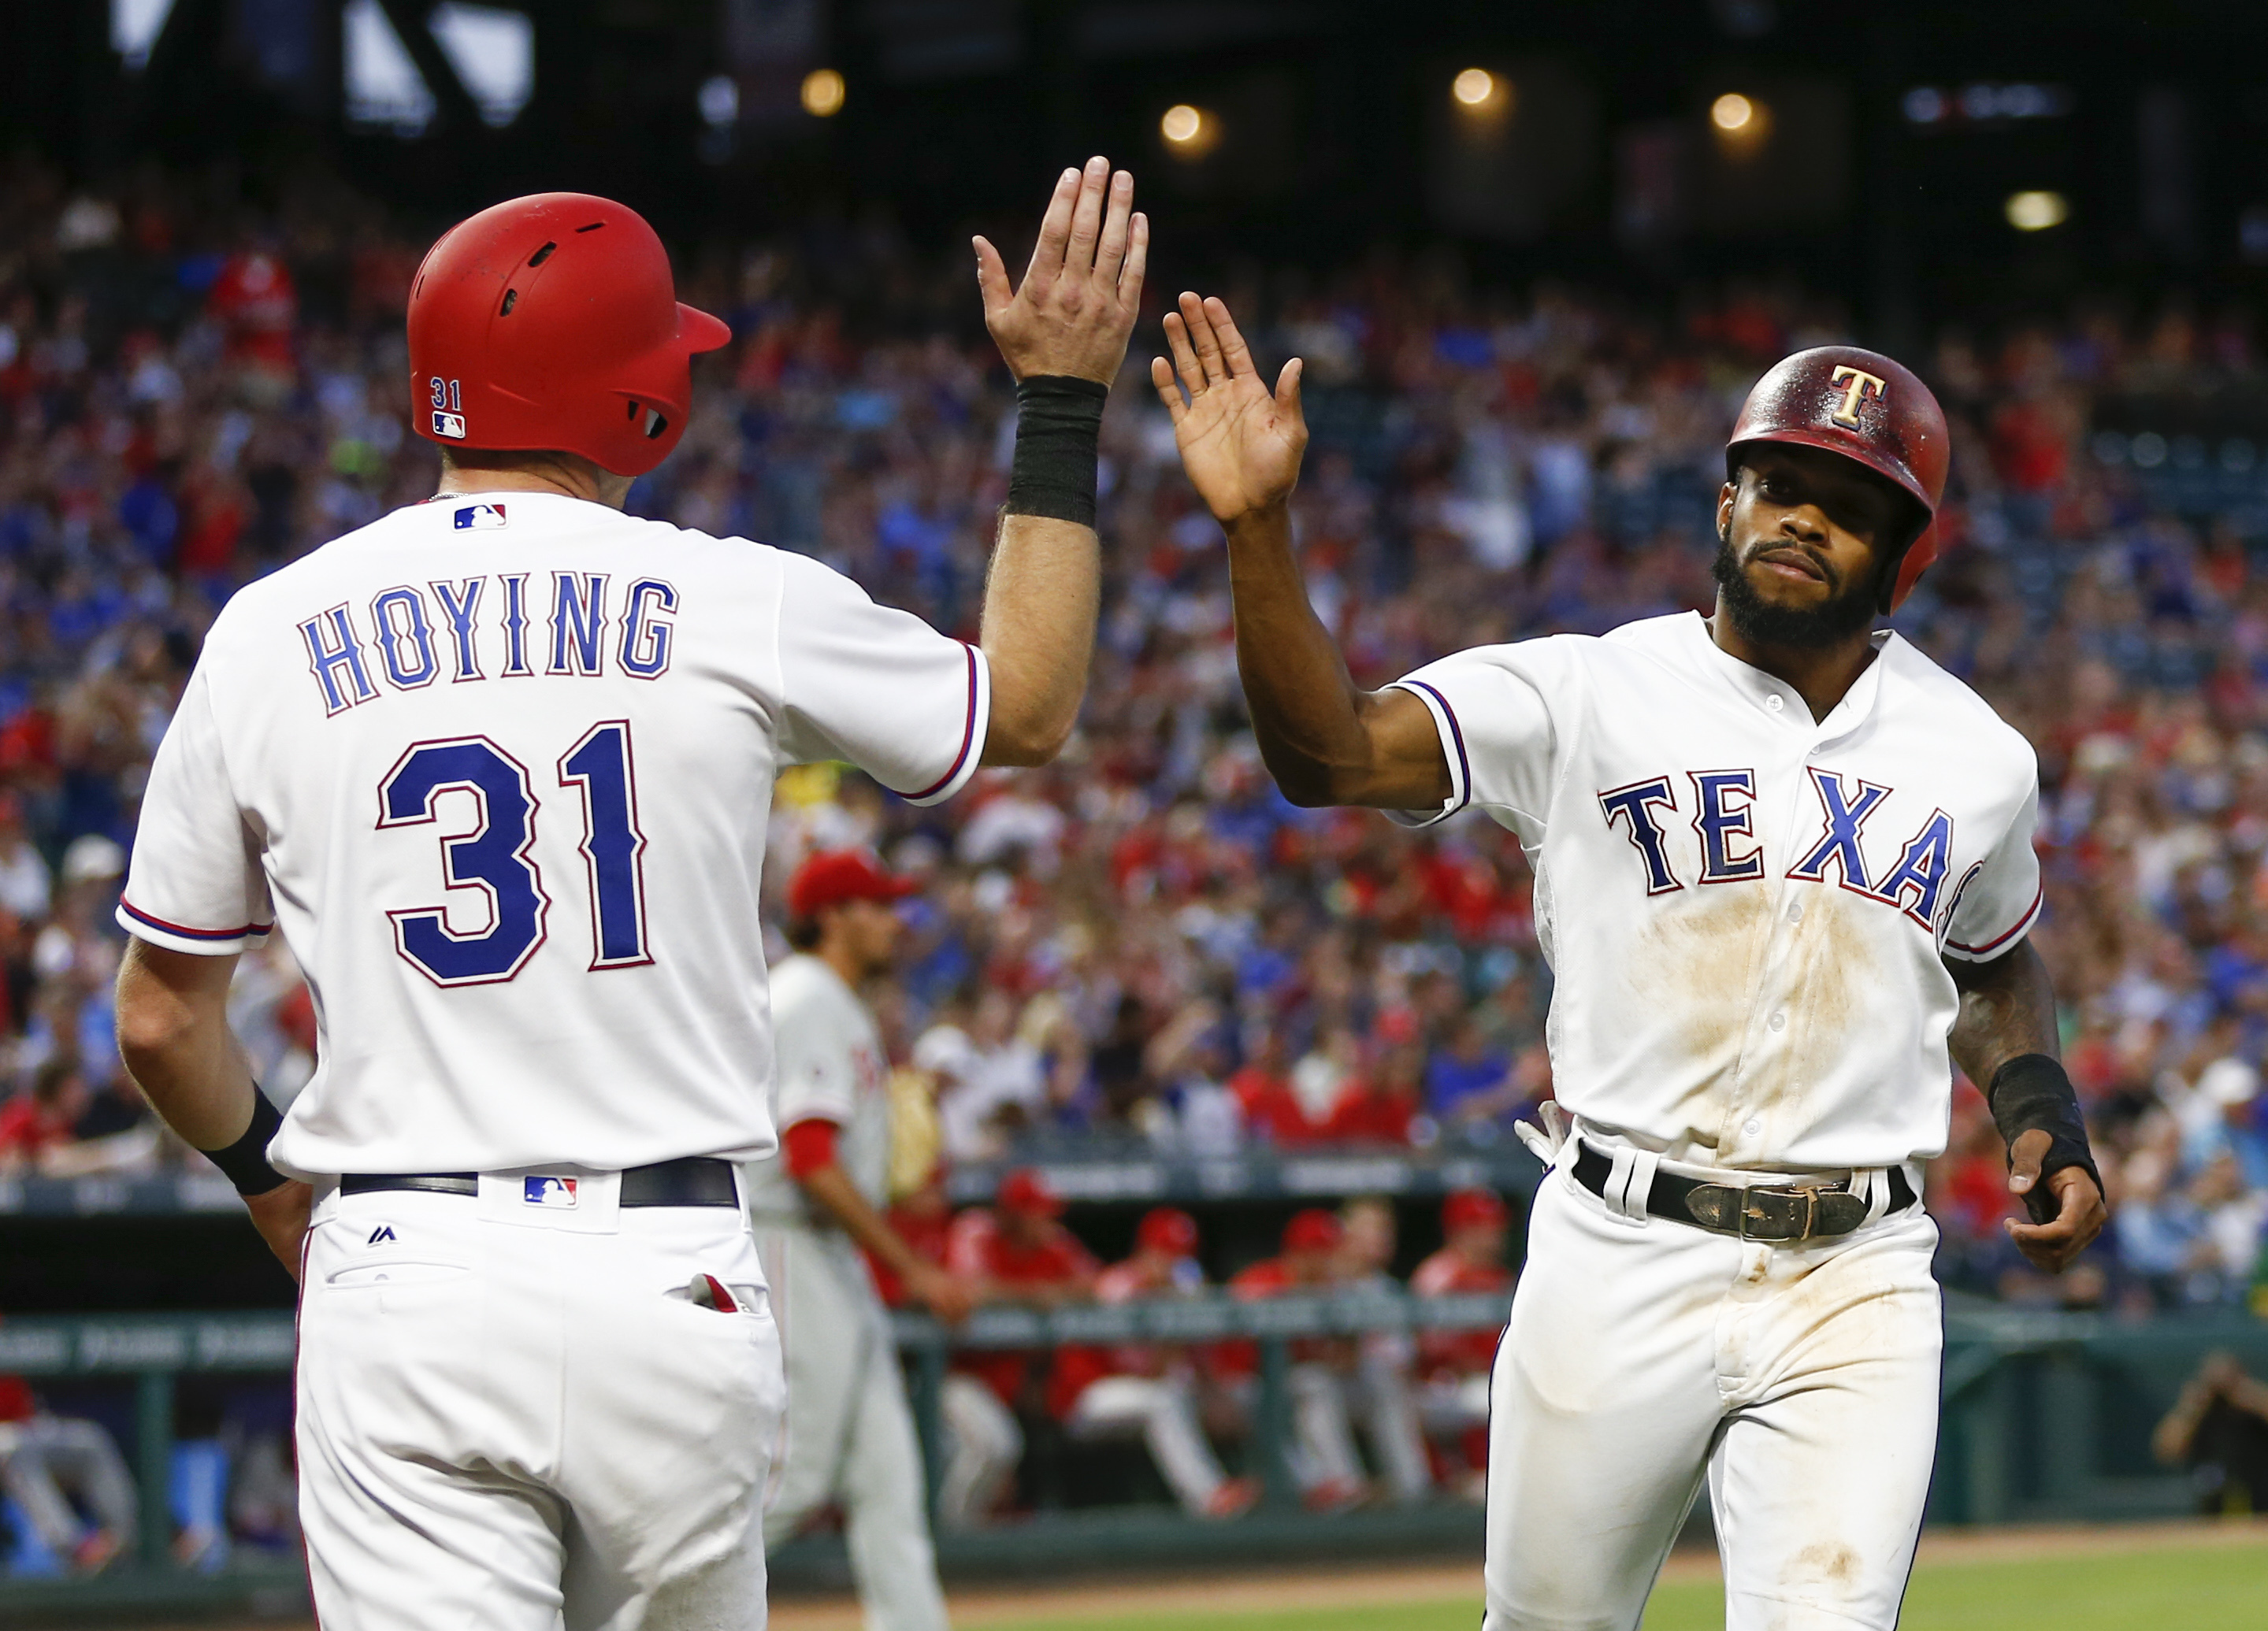 Texas Rangers' Delino DeShields, right, and Jared Hoying (13) celebrate scoring on a single by Shin-Soo Choo against the Philadelphia Phillies during the third inning of a baseball game, Wednesday, May 17, 2017, in Arlington, Texas. (AP Photo/Jim Cowsert)